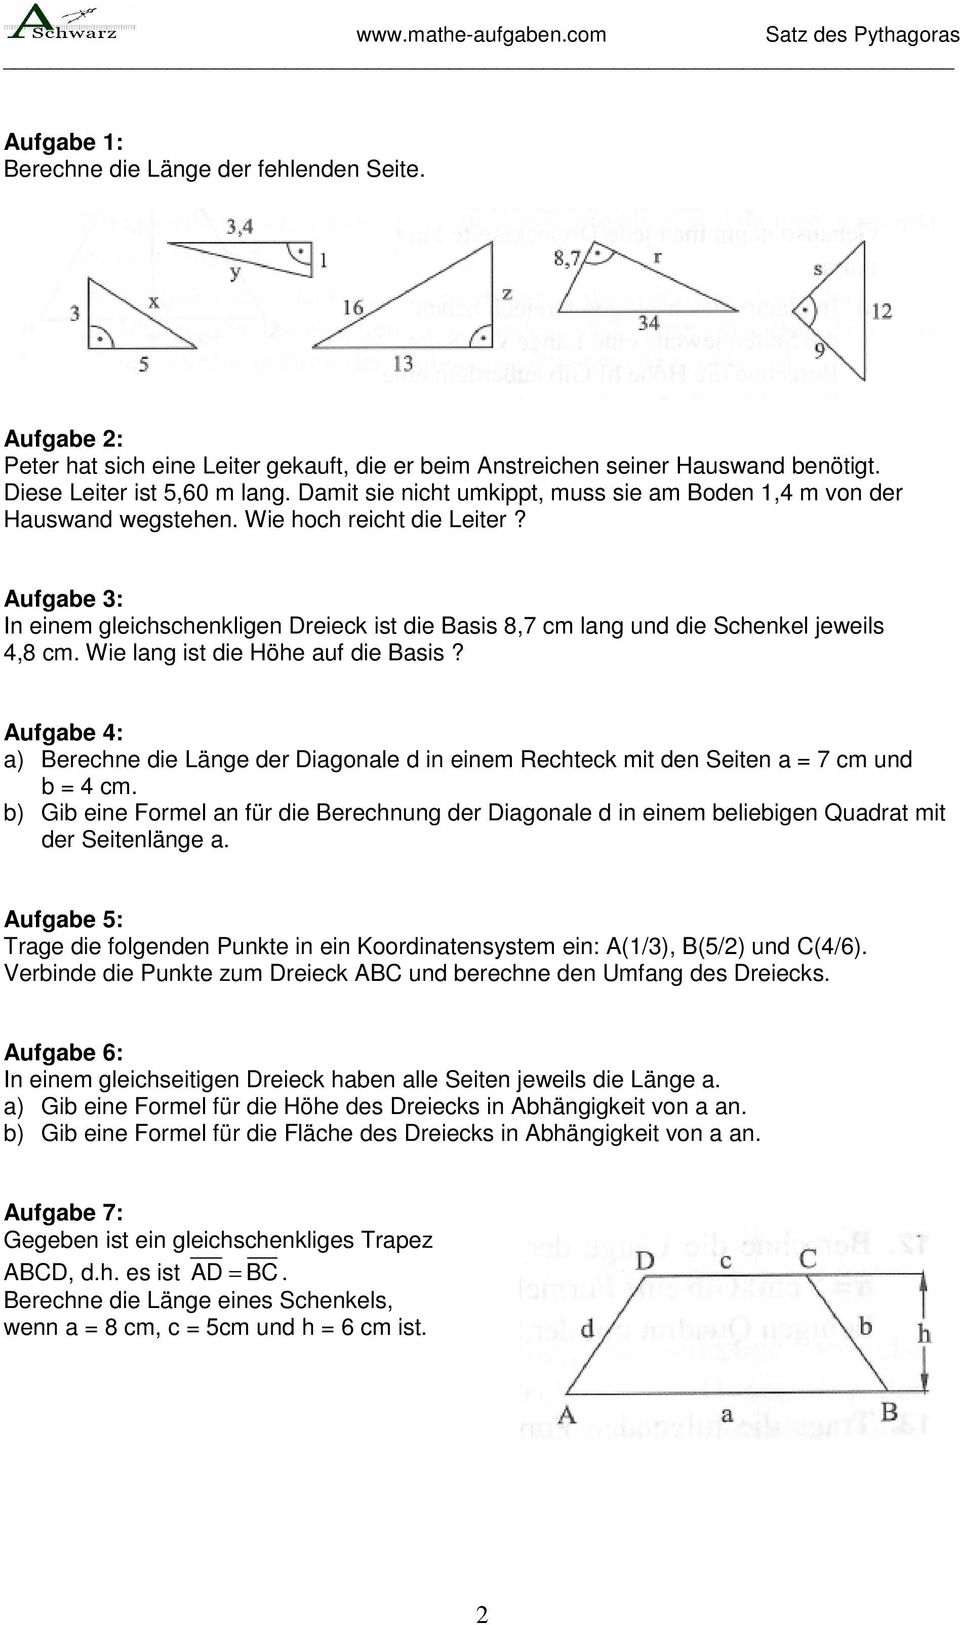 satz des pythagoras realschule gymnasium klasse 9 pdf. Black Bedroom Furniture Sets. Home Design Ideas